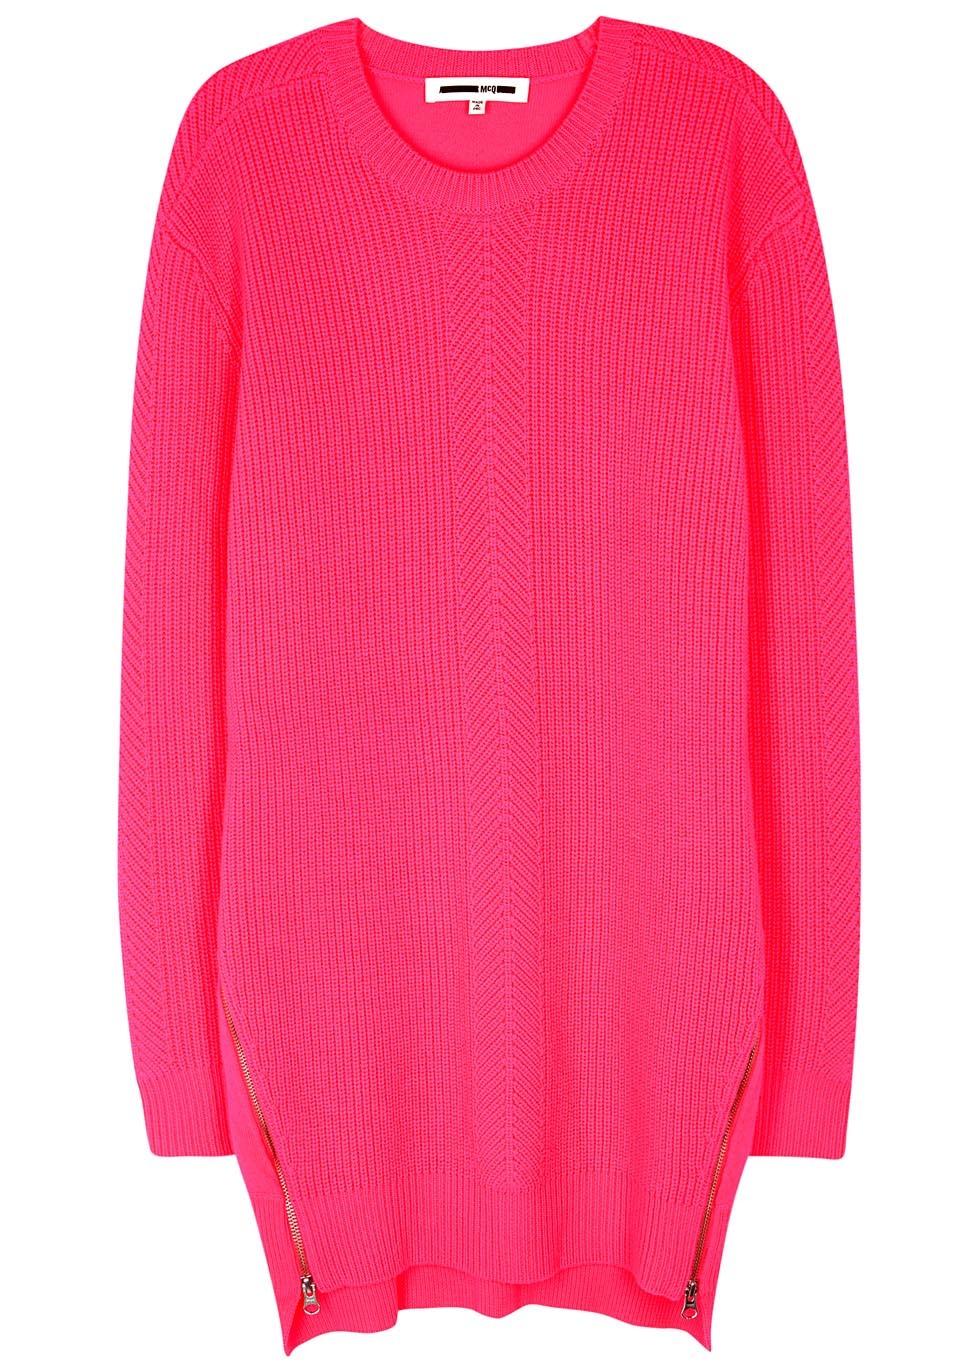 Pink Ribbed Wool Jumper Dress - style: jumper dress; length: mid thigh; fit: loose; pattern: plain; predominant colour: hot pink; occasions: casual; fibres: wool - 100%; neckline: crew; sleeve length: long sleeve; sleeve style: standard; texture group: knits/crochet; pattern type: knitted - fine stitch; season: s/s 2016; wardrobe: highlight